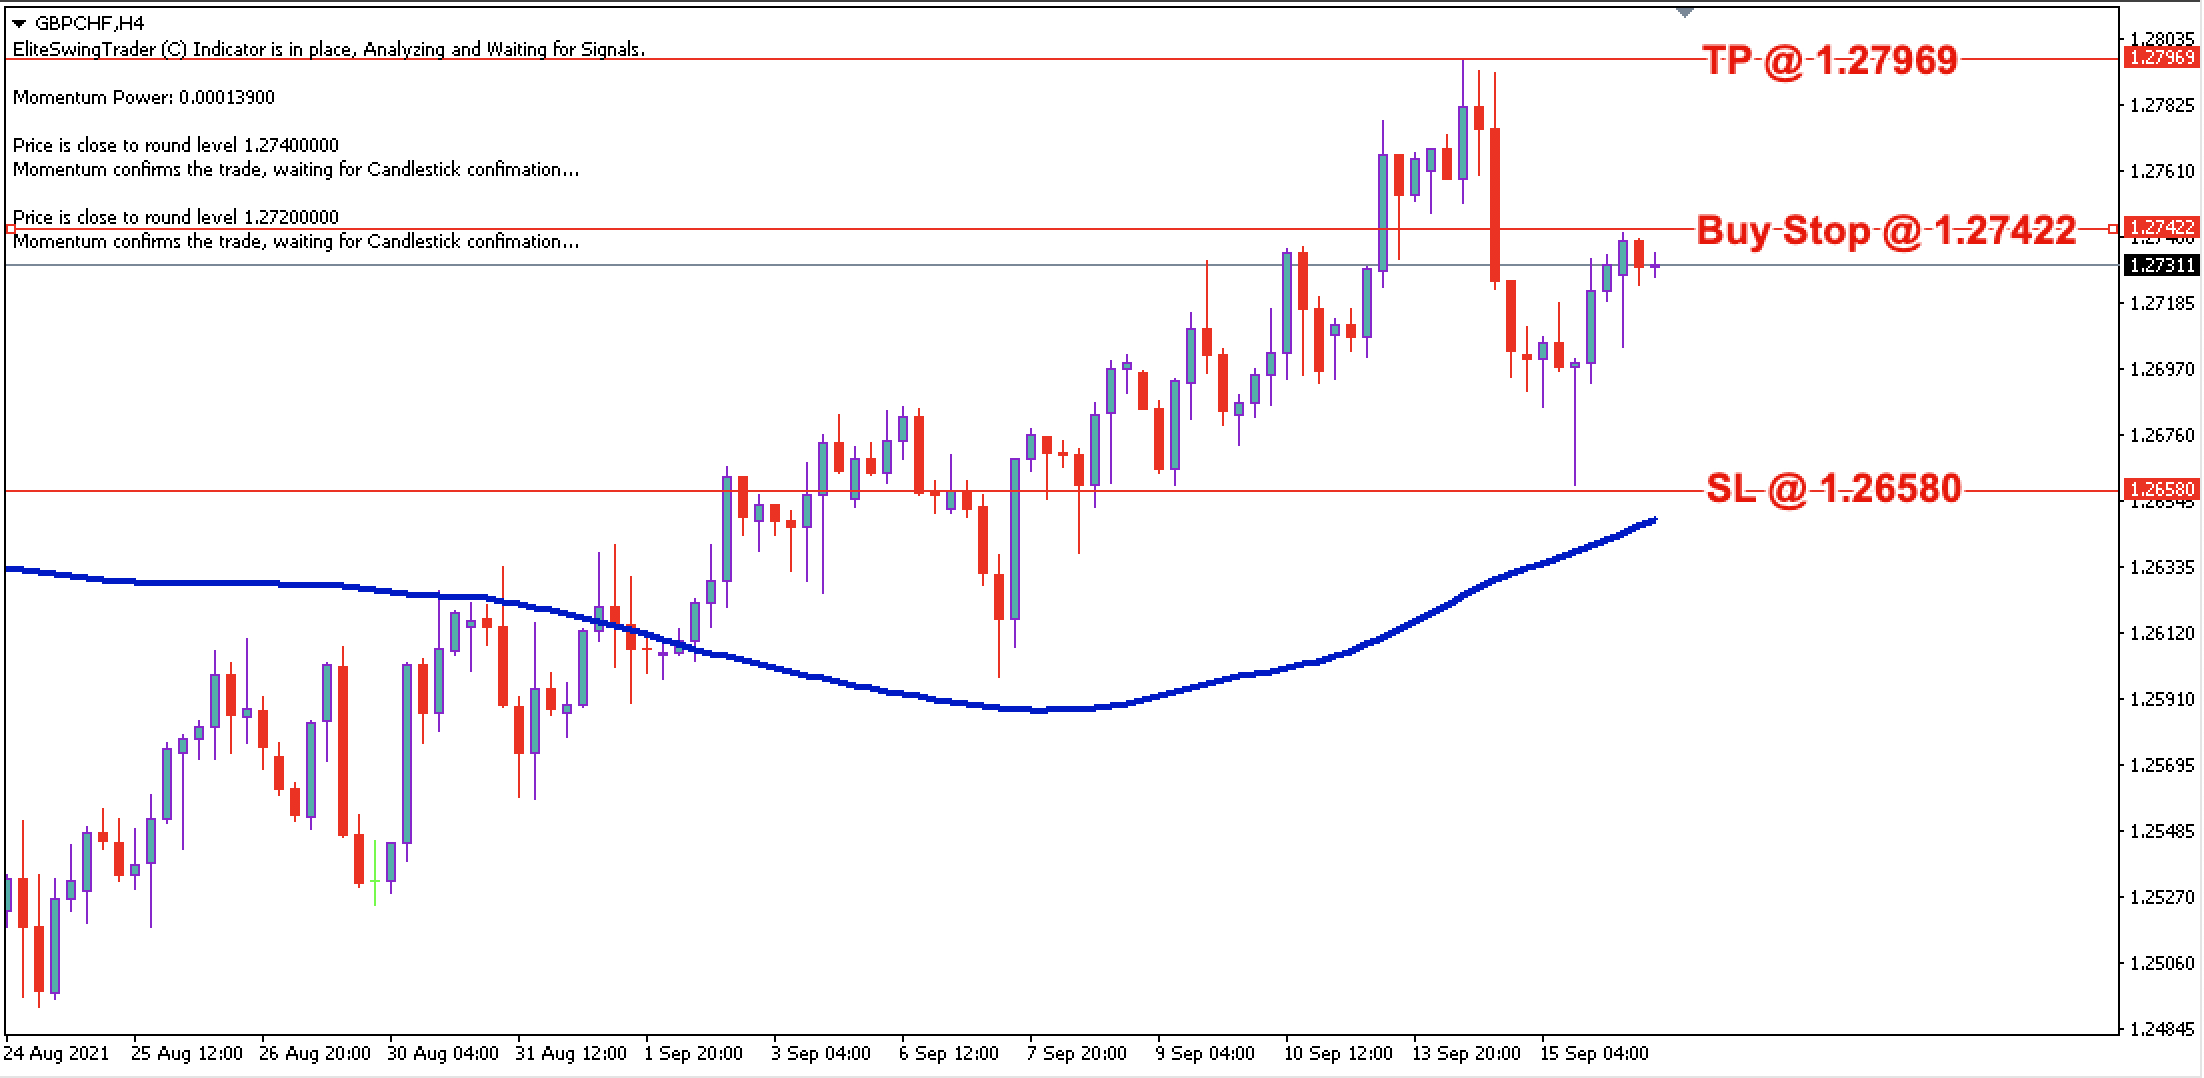 GBP/CHF Daily Price Forecast – 16th Sept 2021